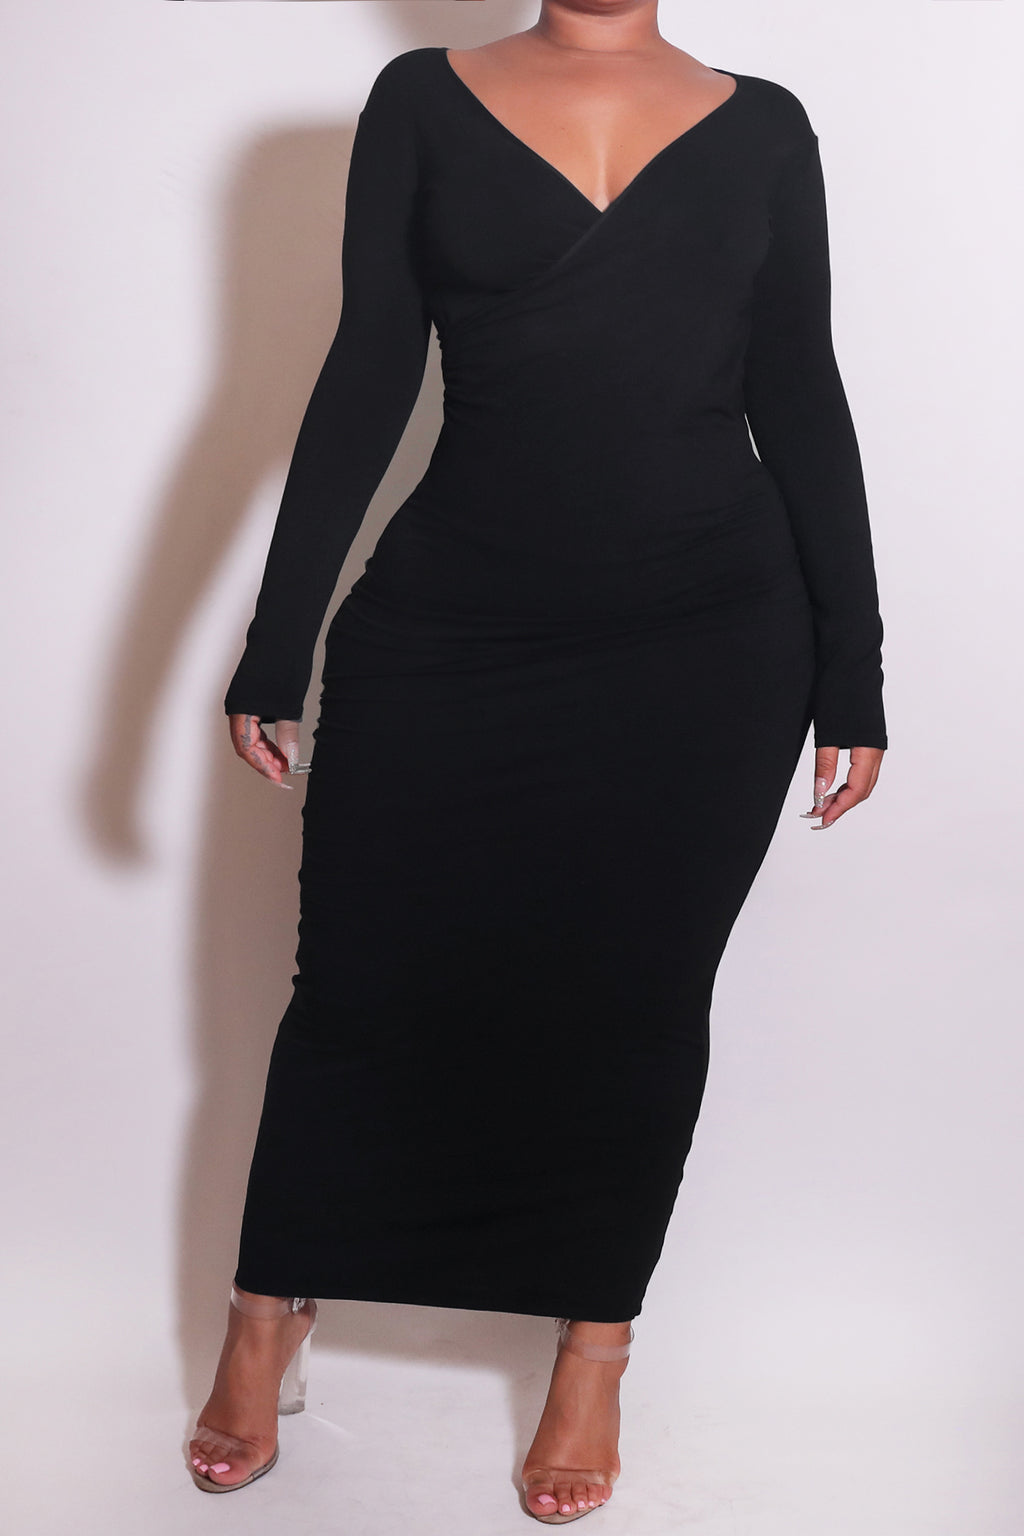 The Wrap Bodycon Maxi Dress Black - Babes And Felines | Specializing in Fashionable Staple Pieces for Every Shape and Size (1449225519176)